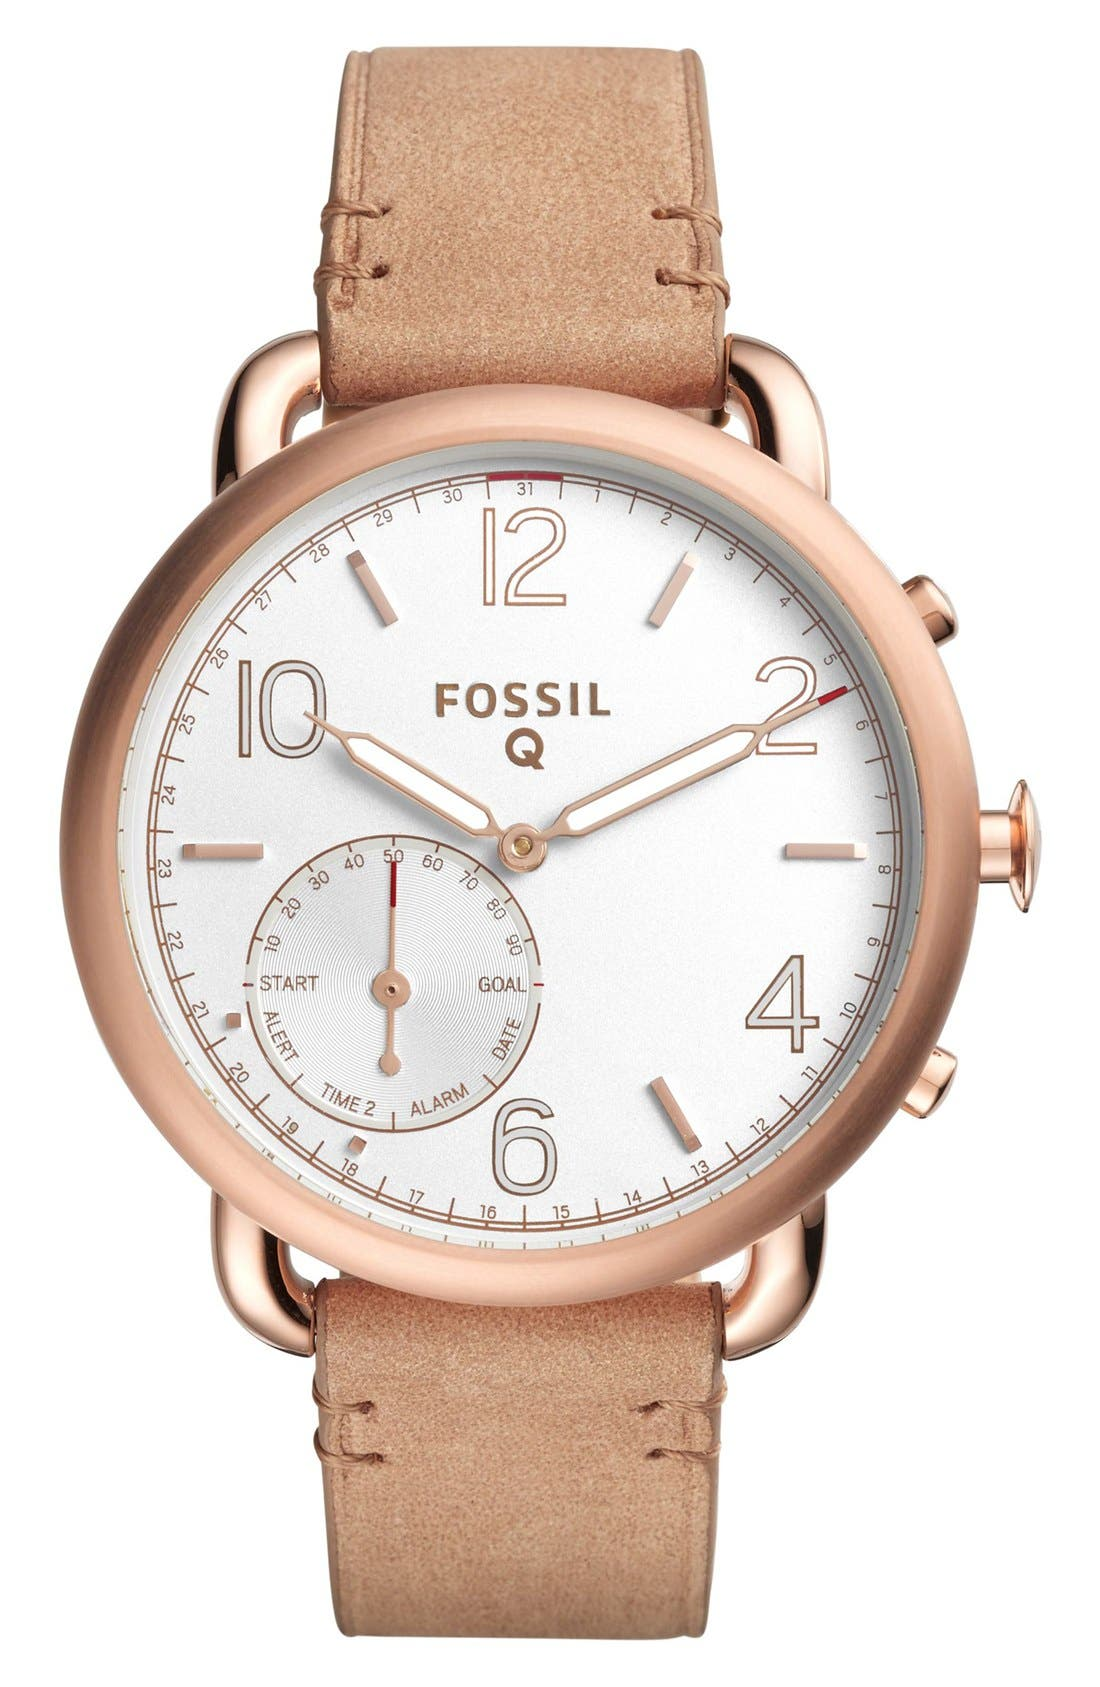 Fossil Q Tailor Leather Strap Smart Watch, 40mm